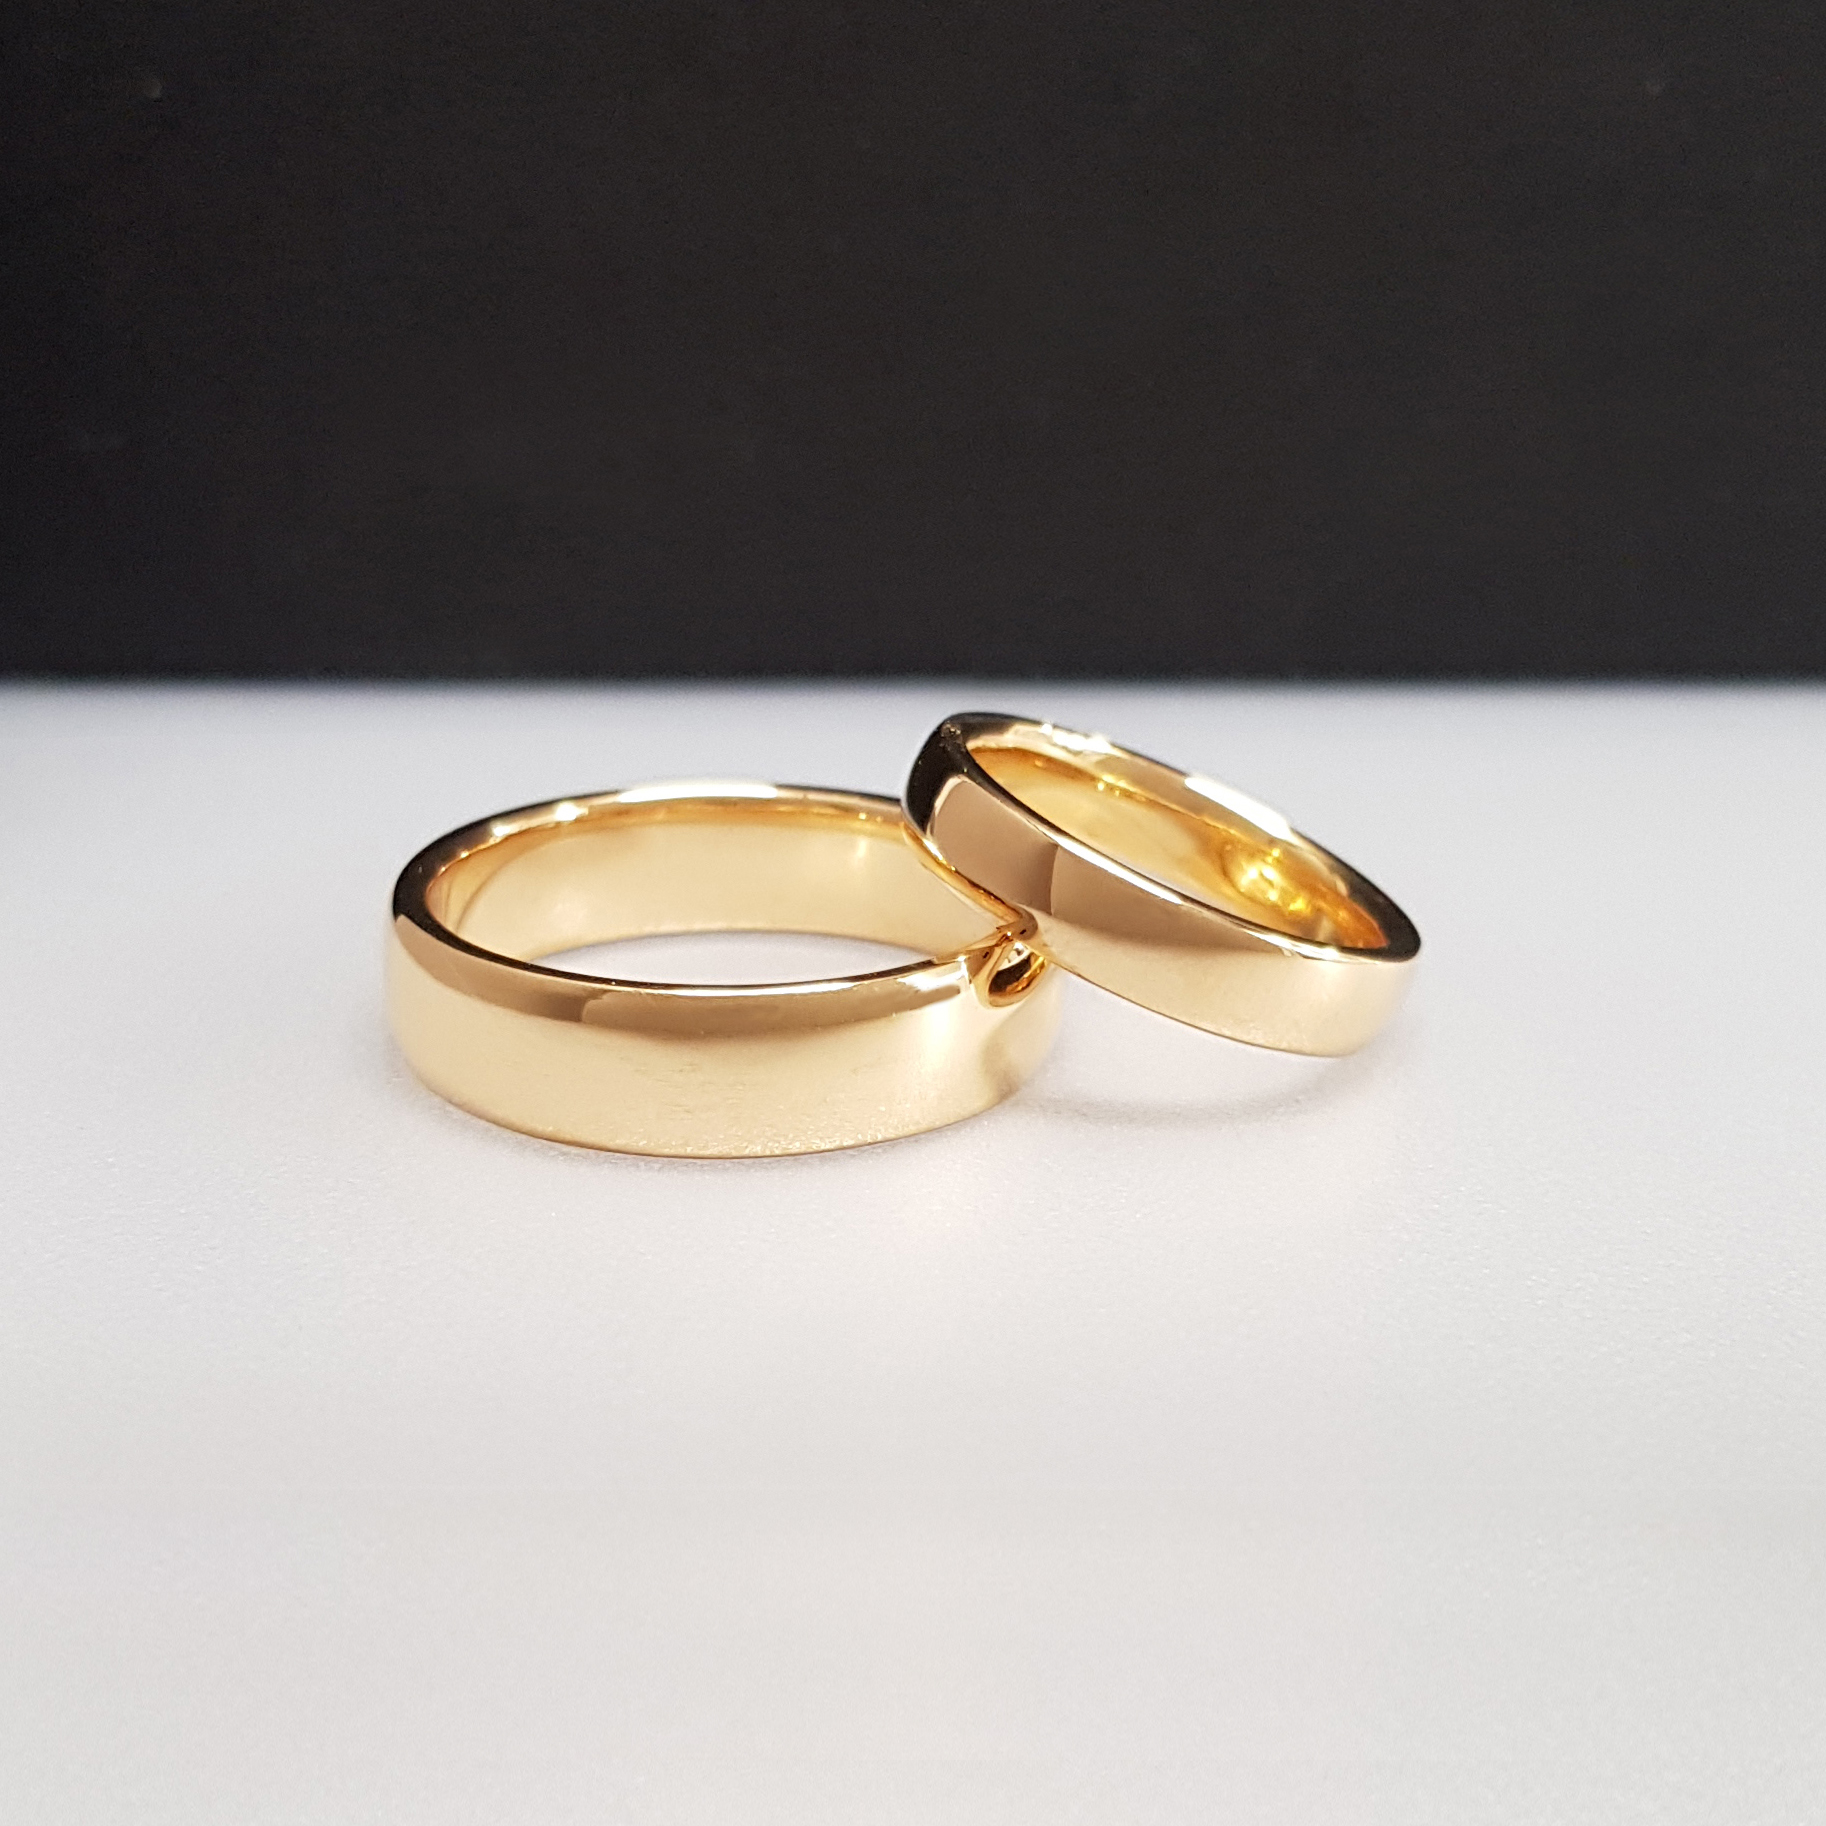 A pair of 22k wedding rings on a white surface with a black background.